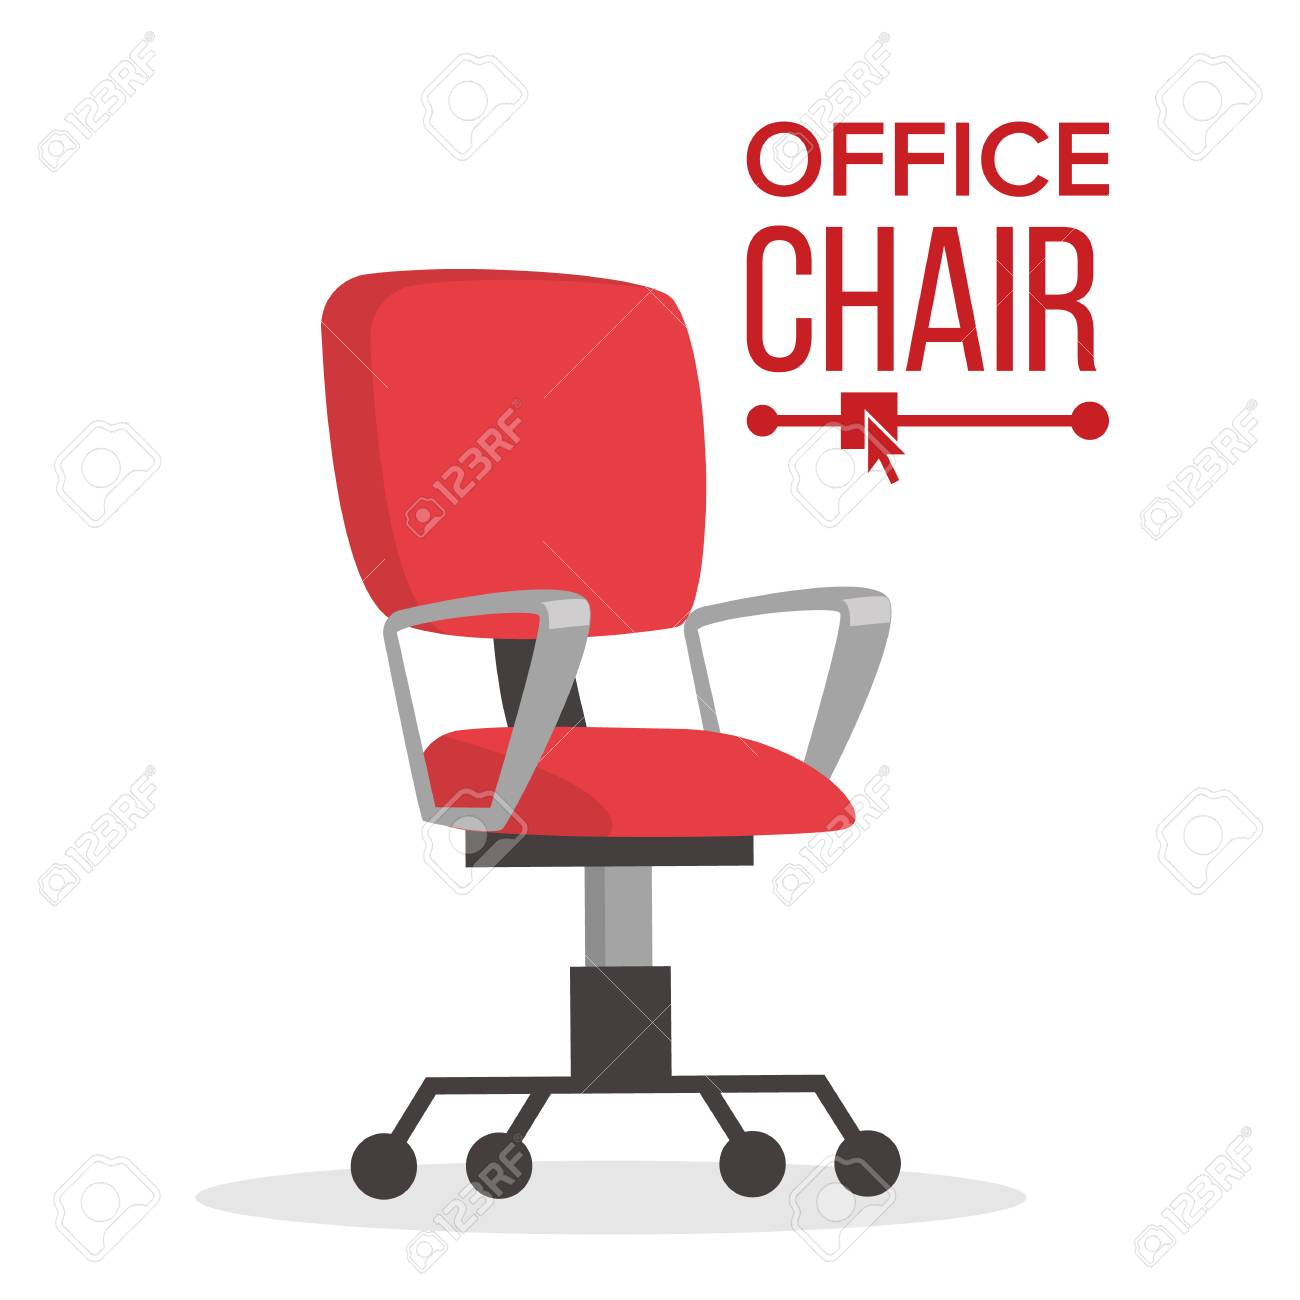 office chair vector grosfillex resin lounge chairs business manager empty seat for employee ergonomic armchair executive director